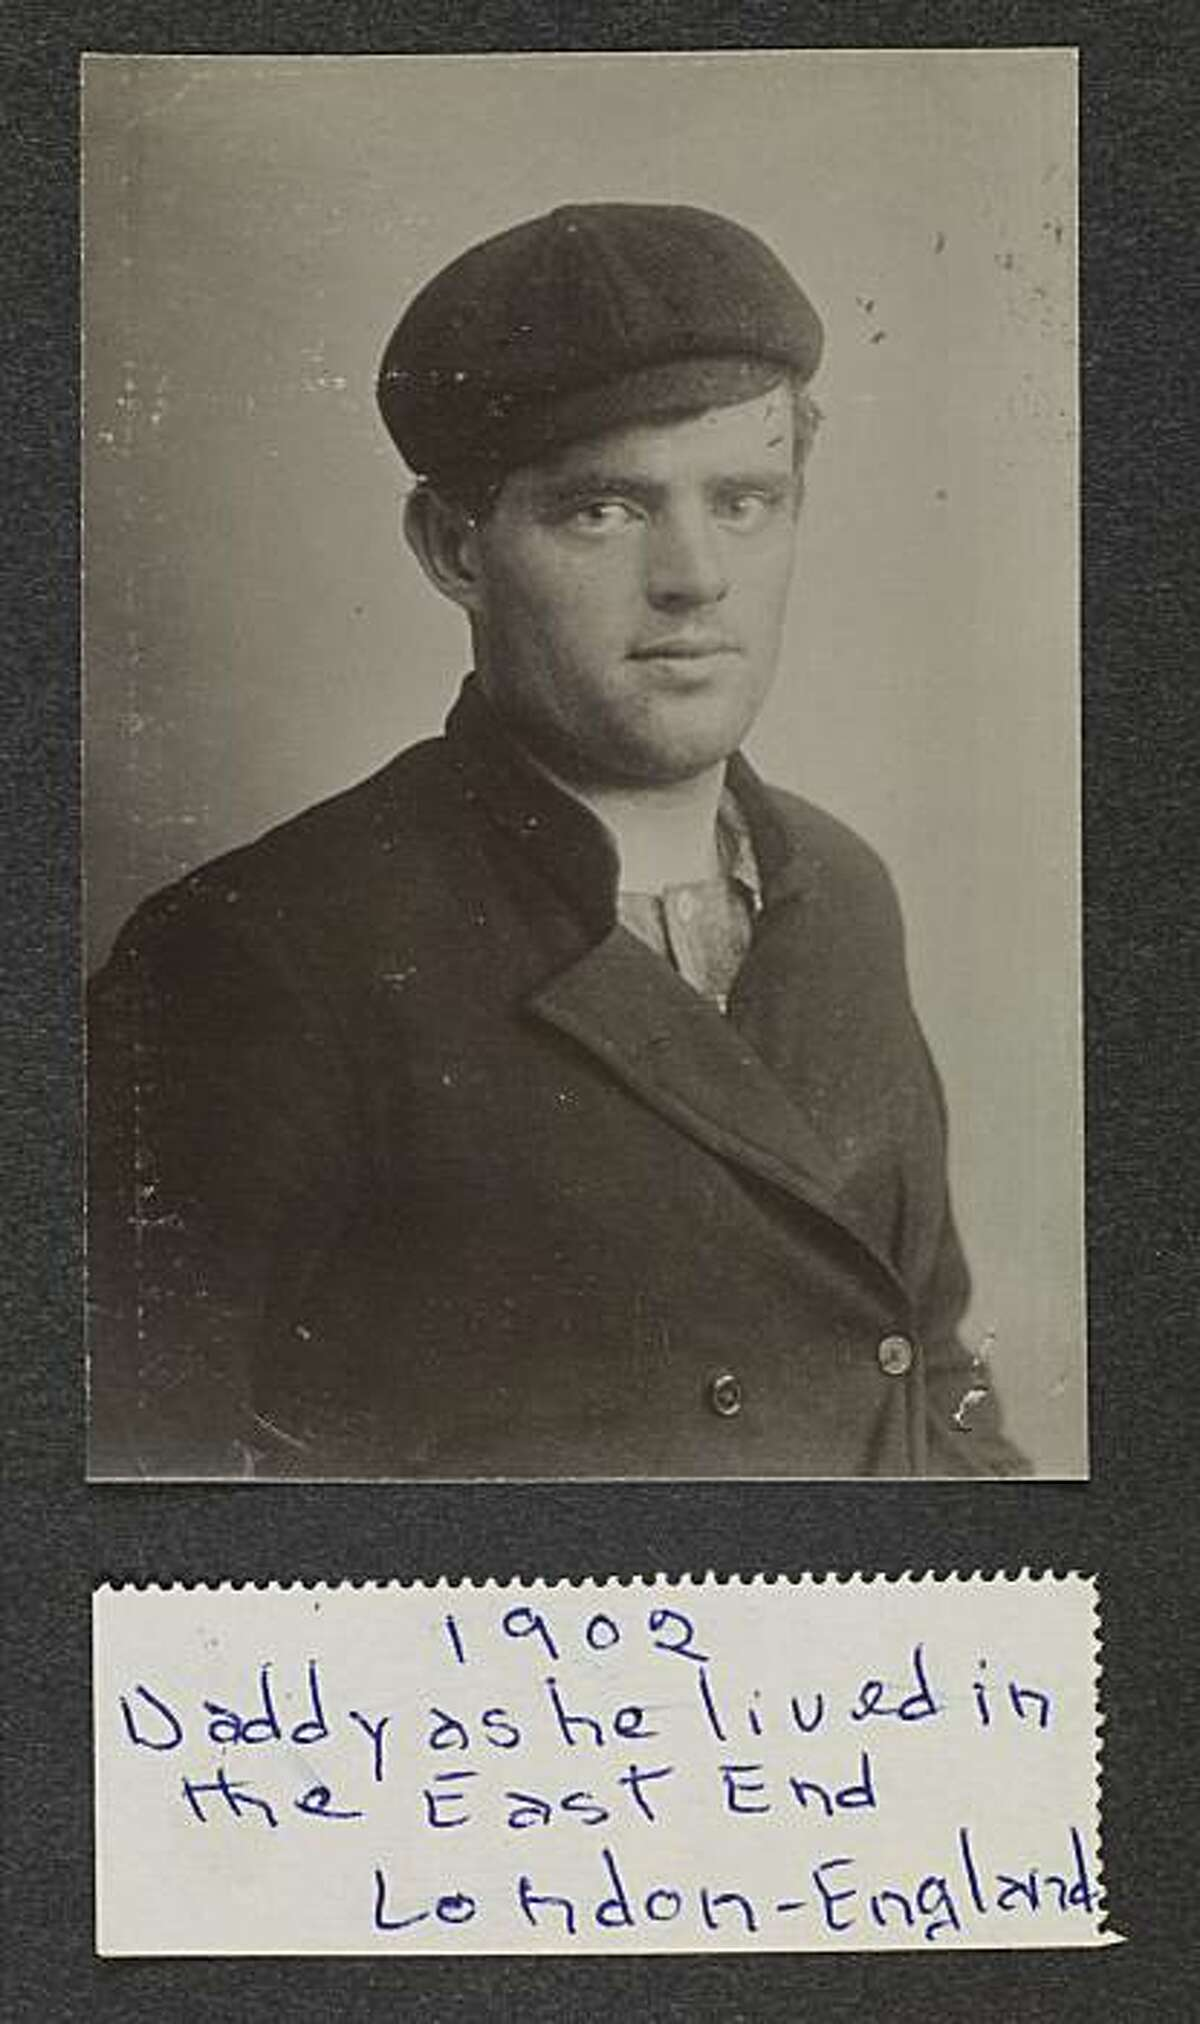 Jack London. ONE TIME USE ONLY